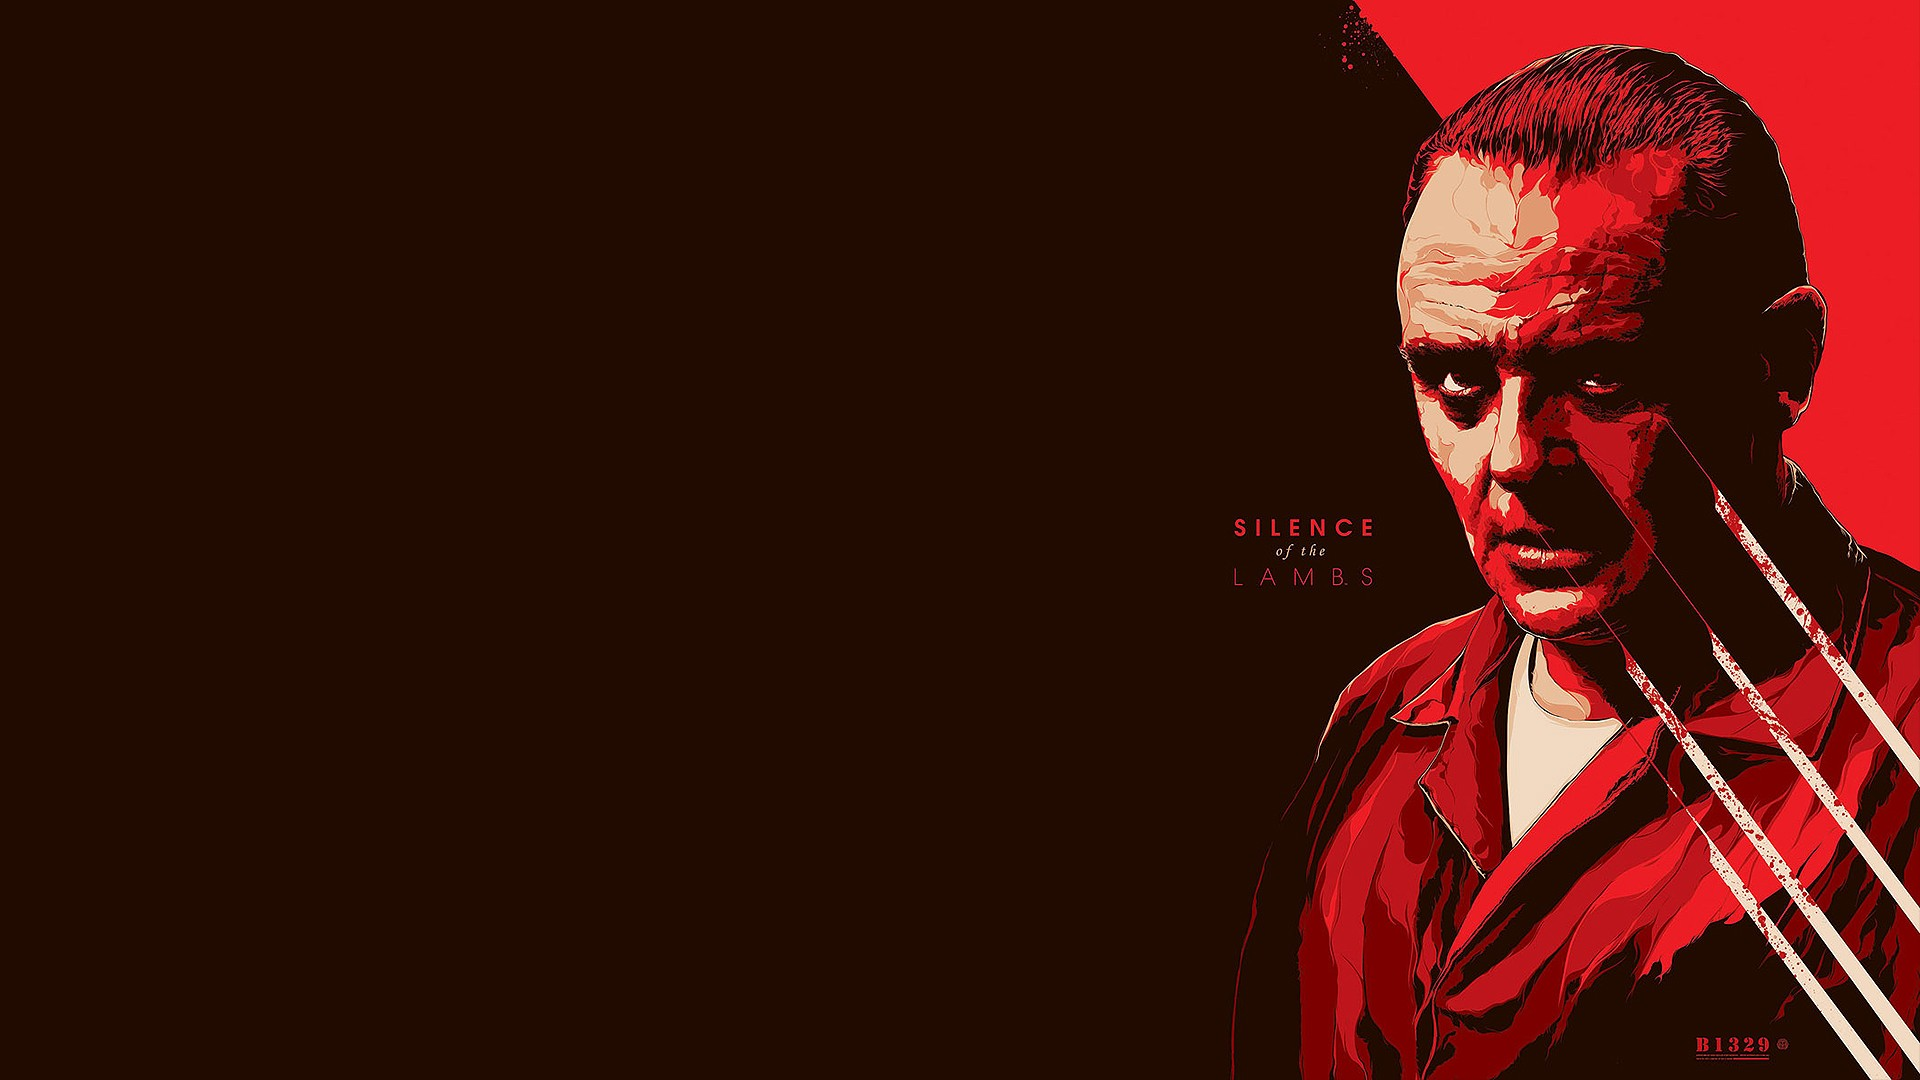 Download the Silence of the Lambs Wallpaper Silence of the Lambs 1920x1080